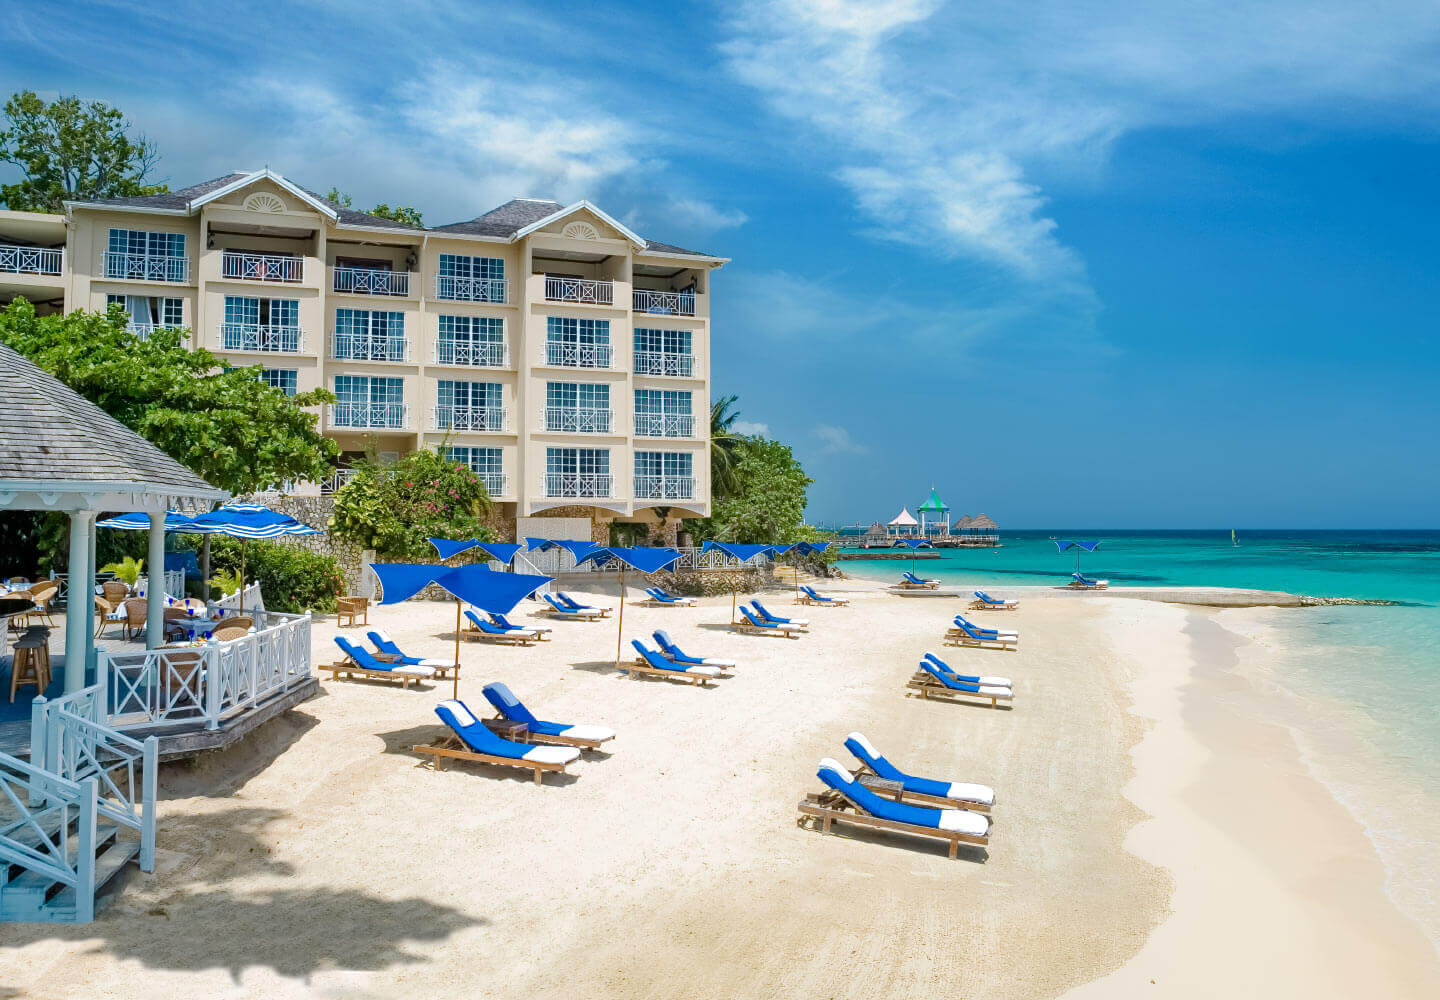 Sandals Royal Plantation - All Inclusive Vacations